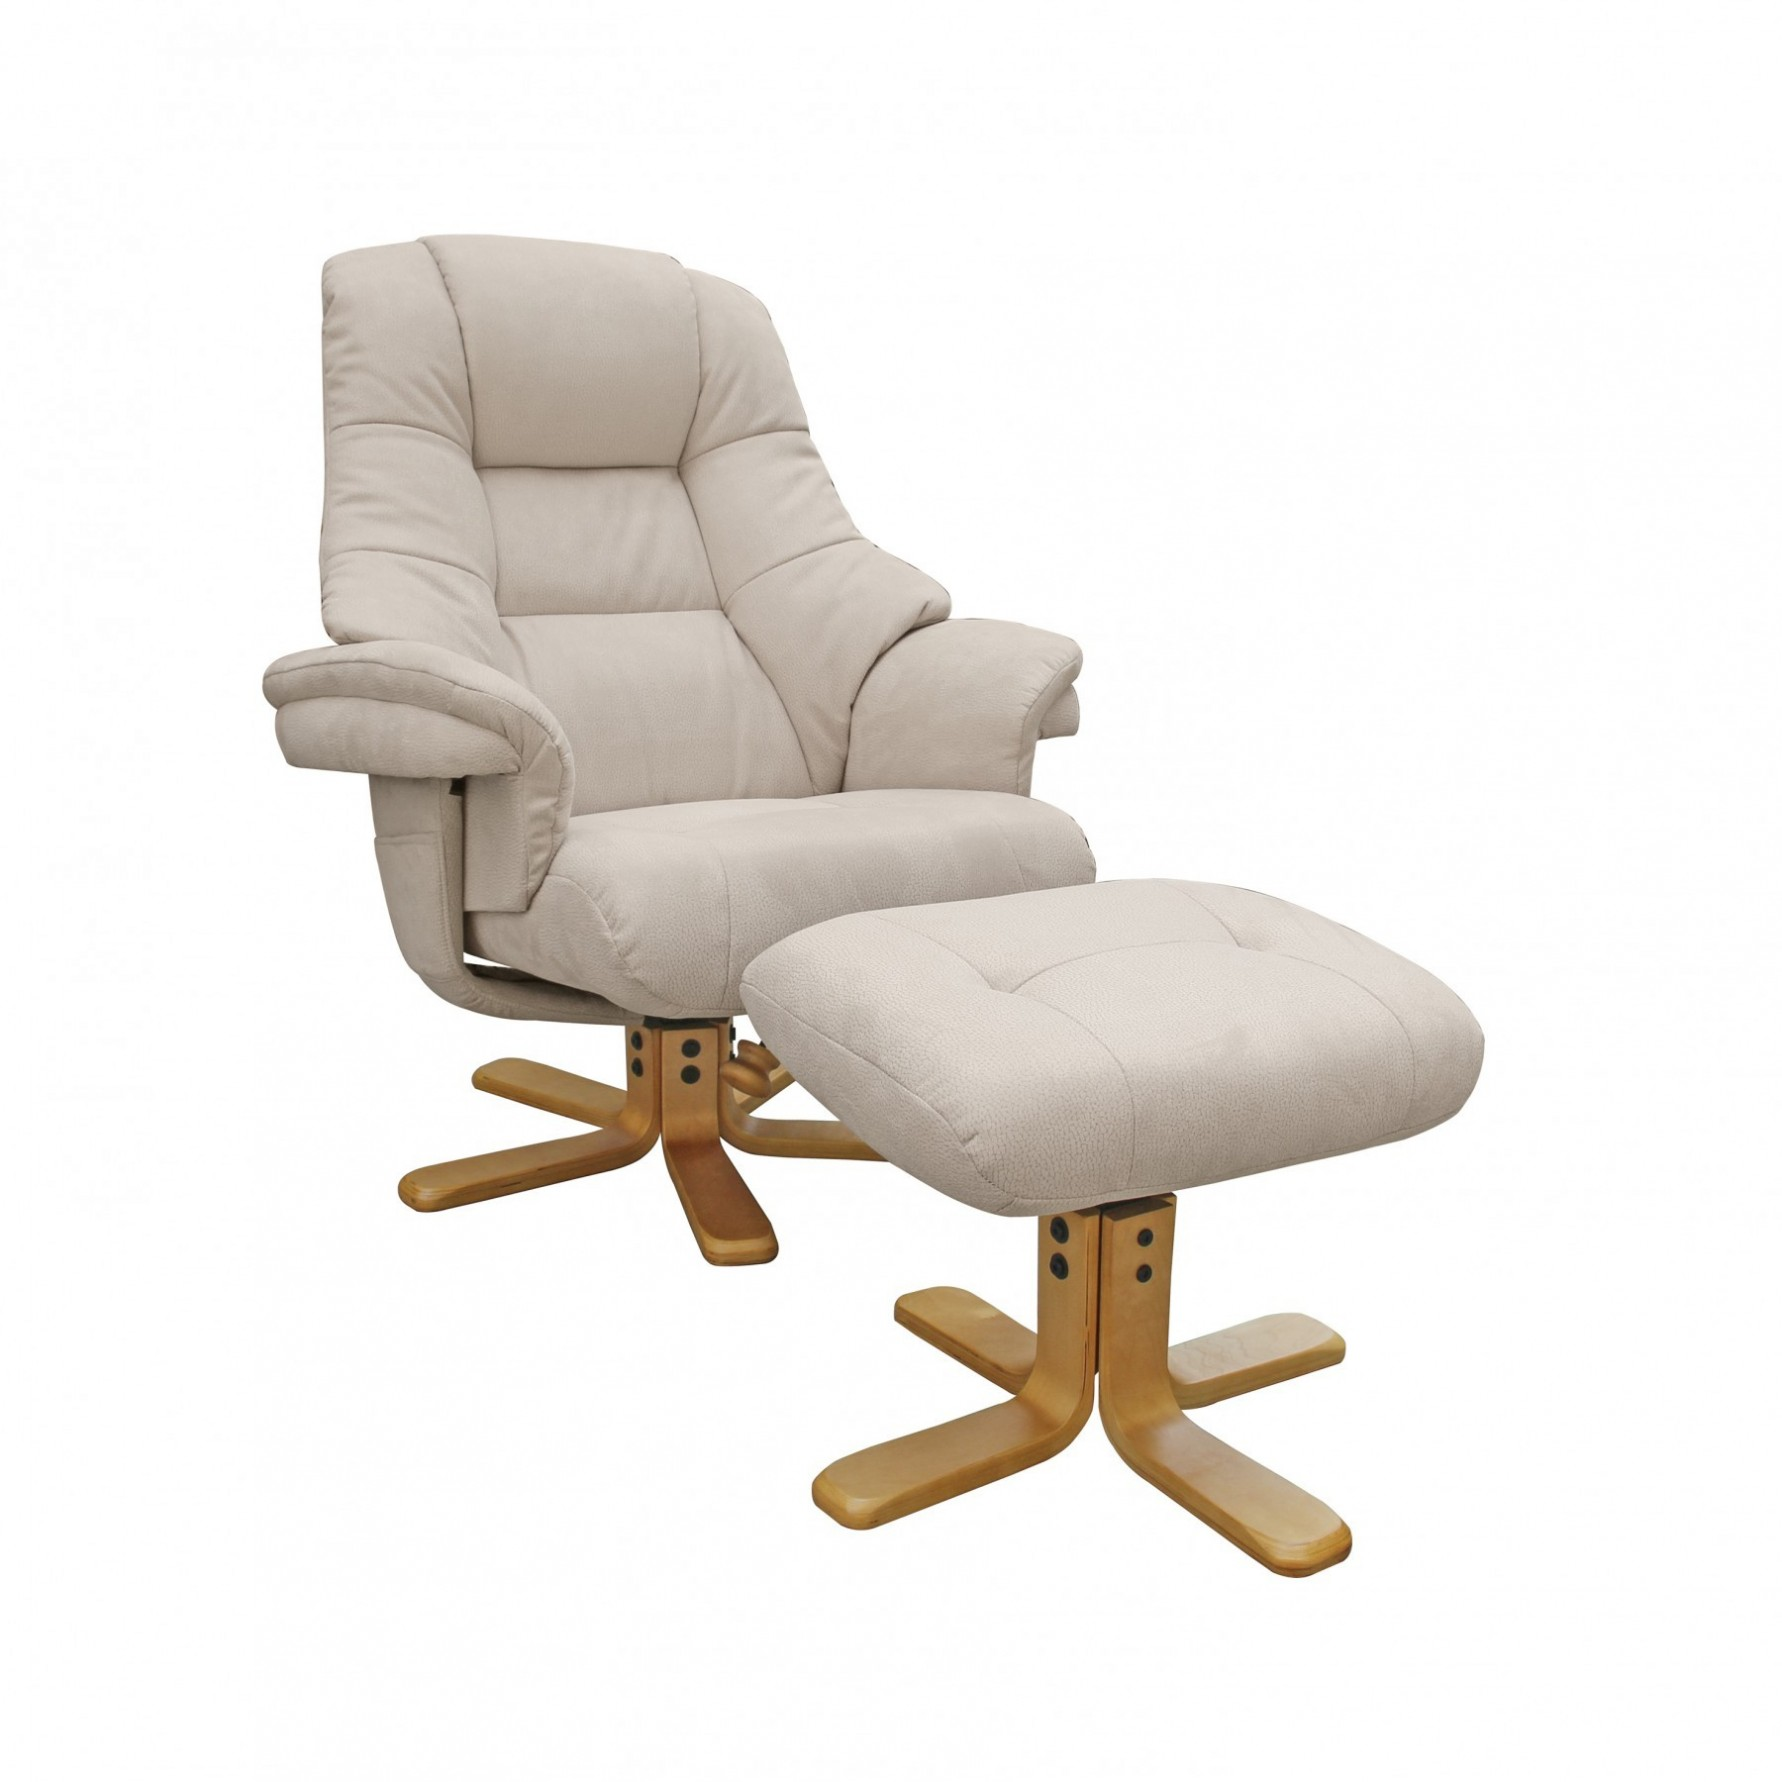 Relaxsessel Stressless Ohne Hocker Lesesessel Mit Hocker Vianova Project